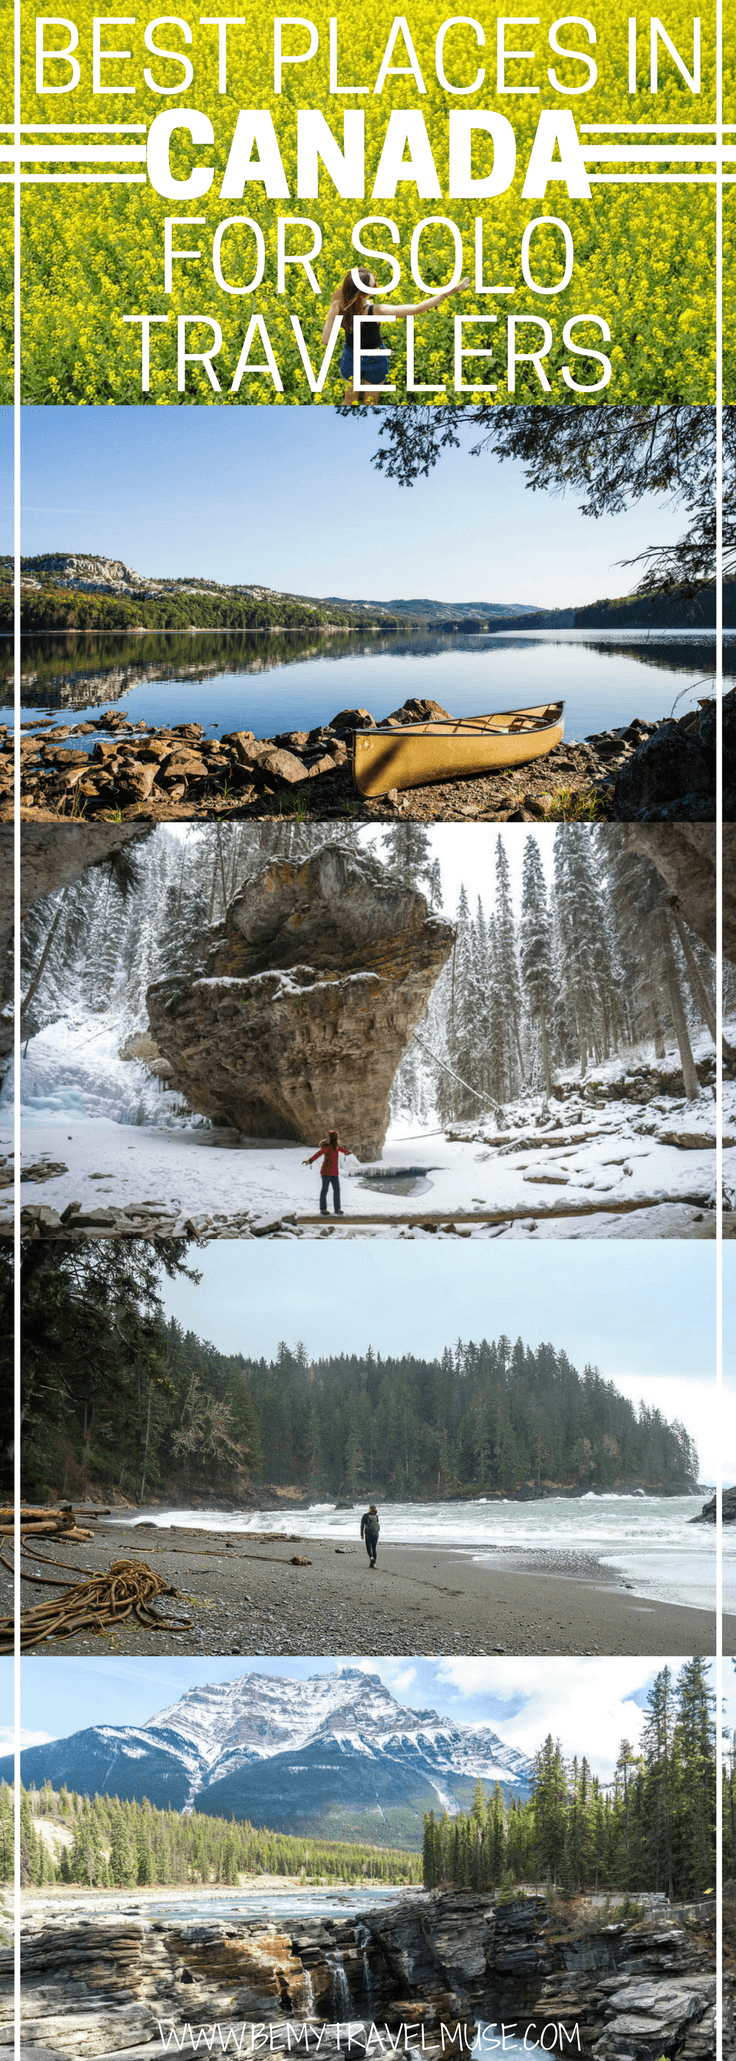 13 best places in Canada for solo travelers | The country that is good to visit any time of year offers a mix of urban and nature travel opportunities, it is very safe to travel solo in, and the people are so friendly - what's not to love? Travel bloggers around the world share their favorite spots in Canada that are perfect for solo travelers. Check it out! Be My Travel Muse | Canada travel tips | Solo female travel Canada